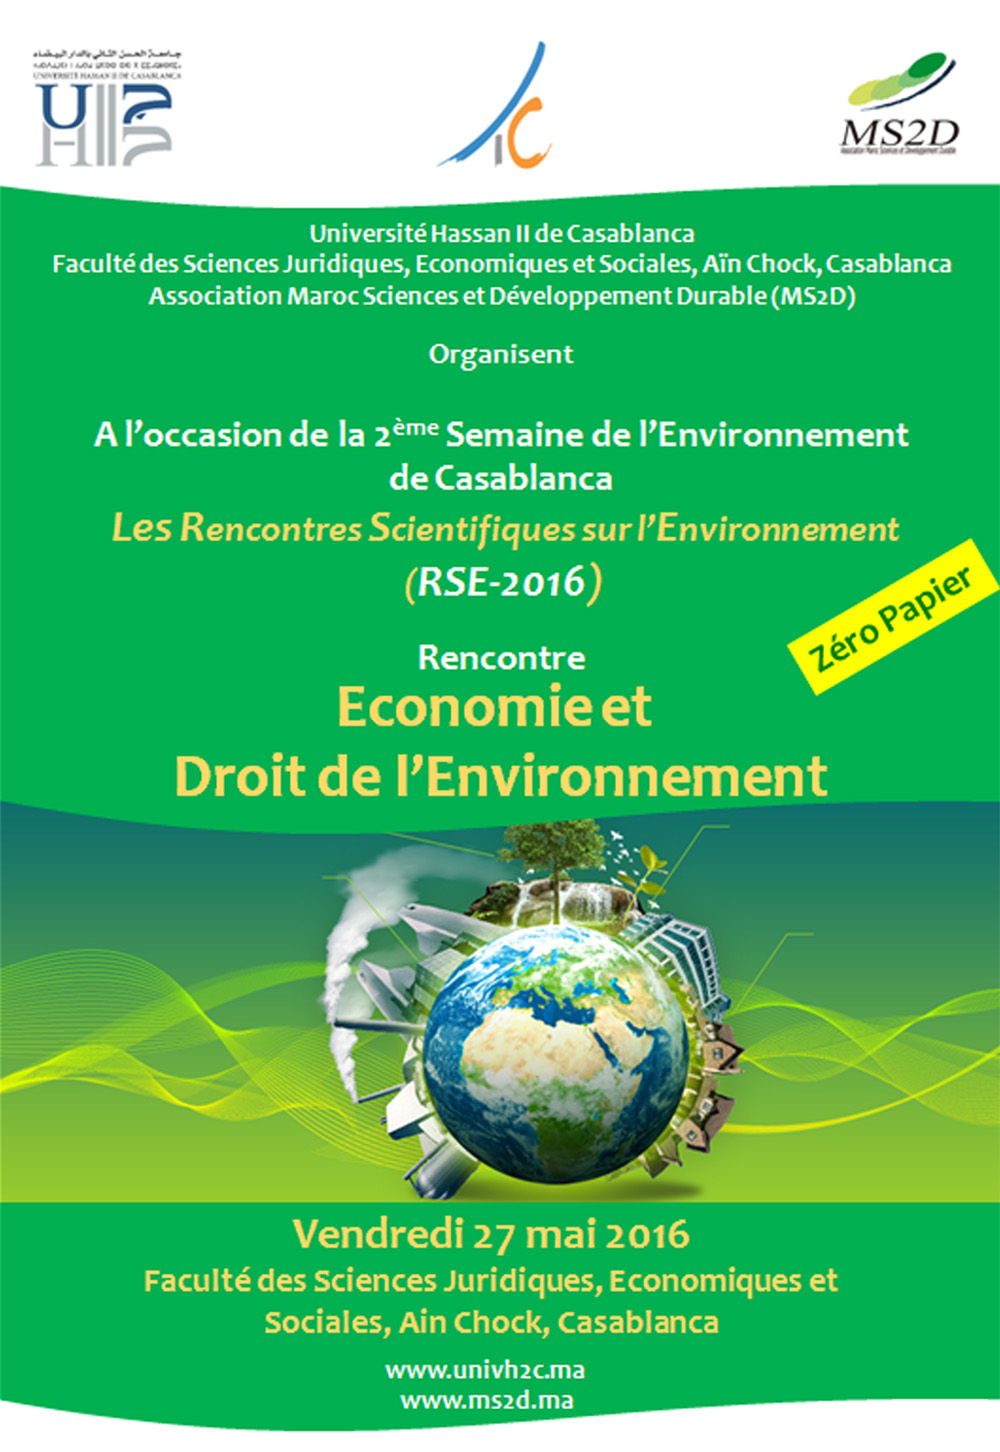 Site de rencontre scientifique